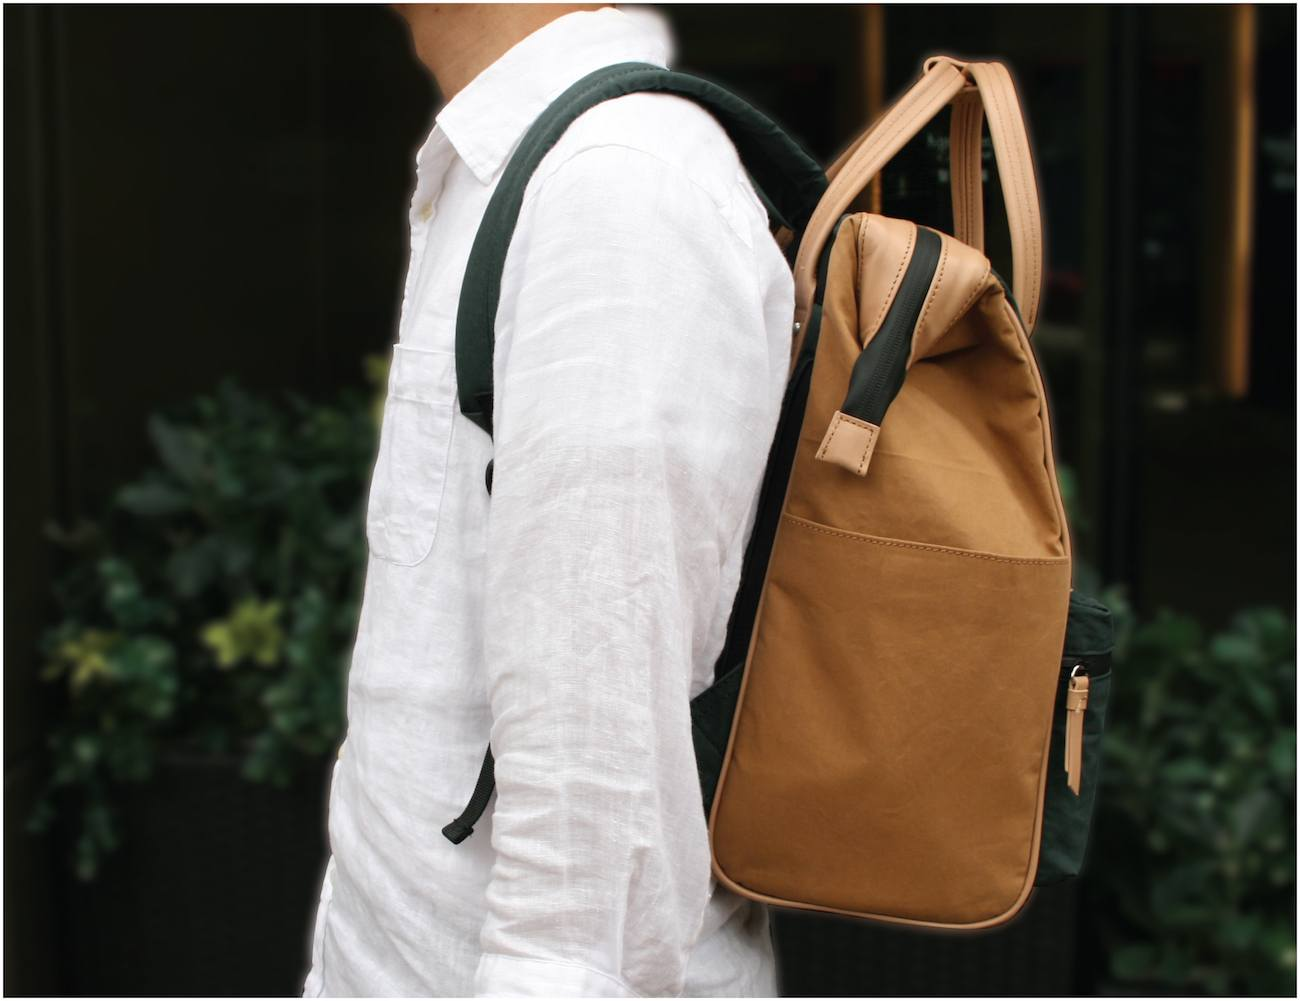 X-Bumper Multifunctional Backpack